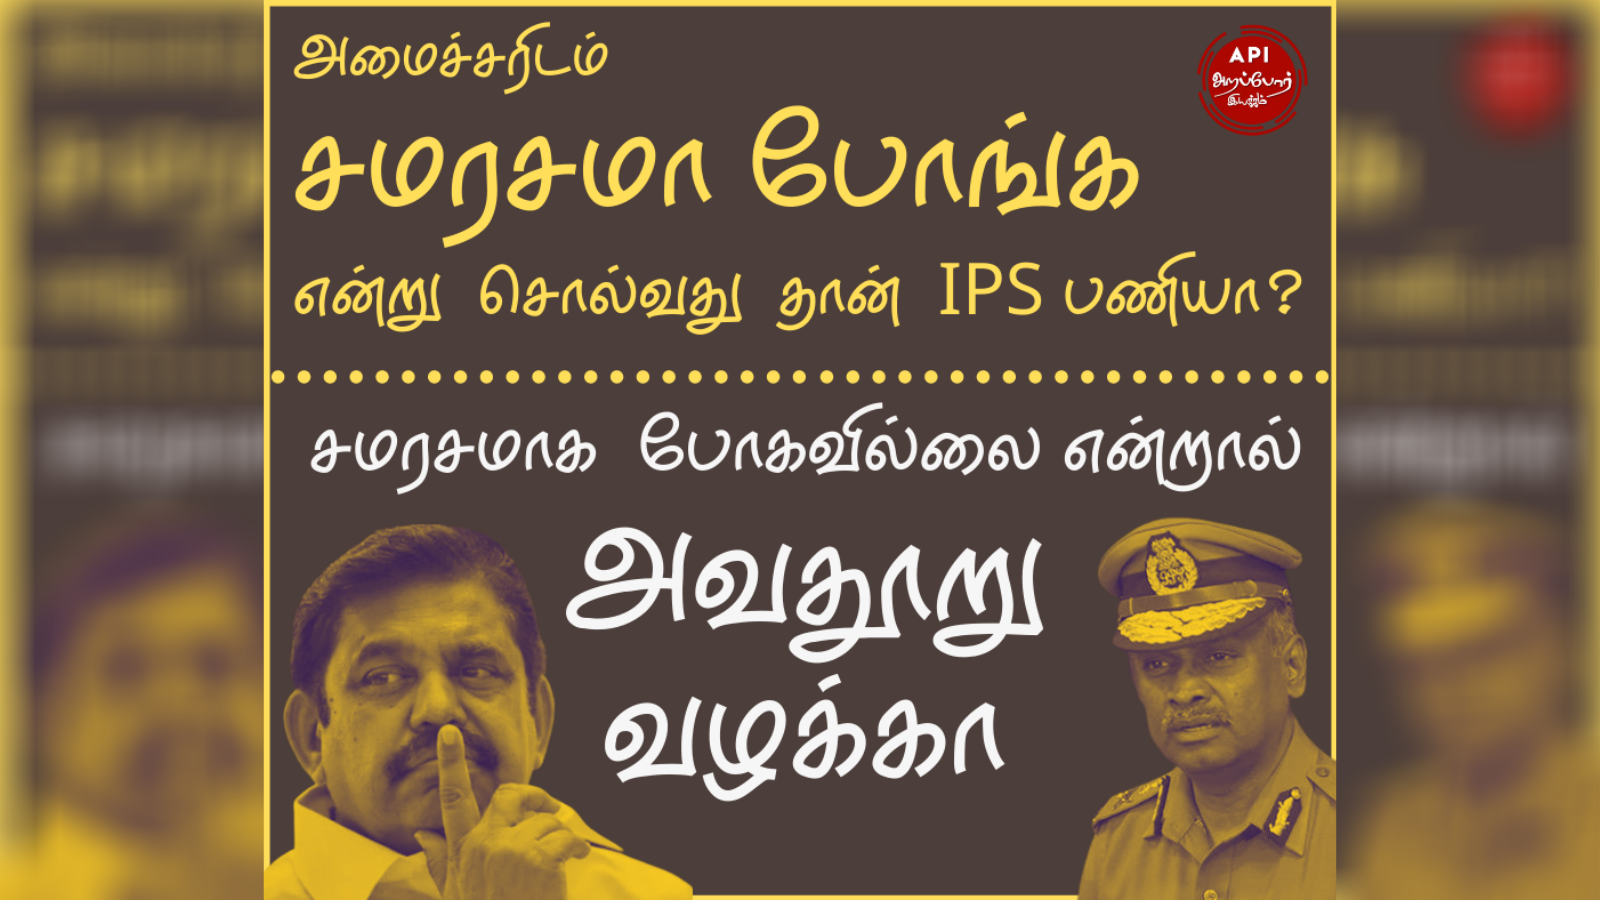 What is the reason behind the Defamation case filed by Viswanathan IPS